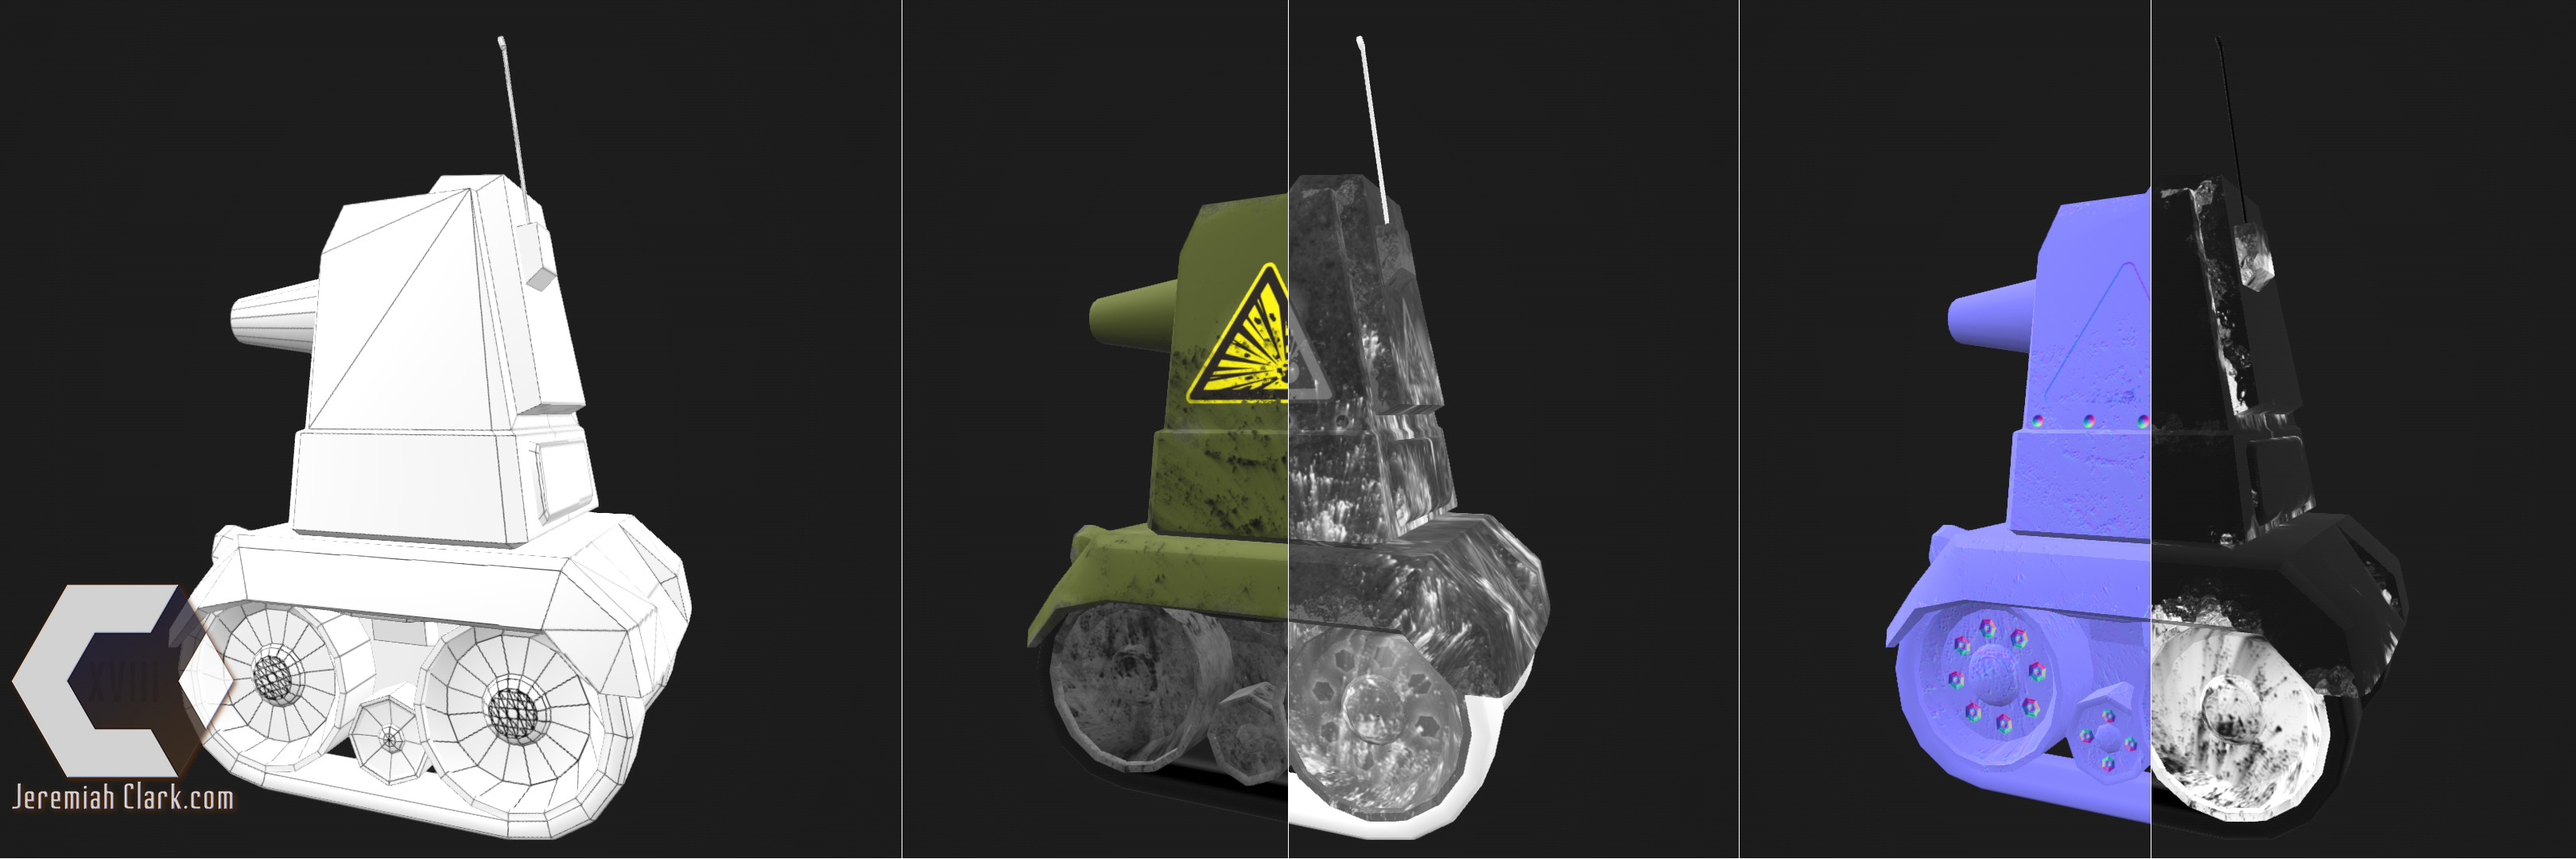 Wireframe and texture maps shown on model: Base Color, Roughness, Normal, Metallic (there is also an Emissive for the headlights).  UVed in Modo. Textured using Substance Designer.